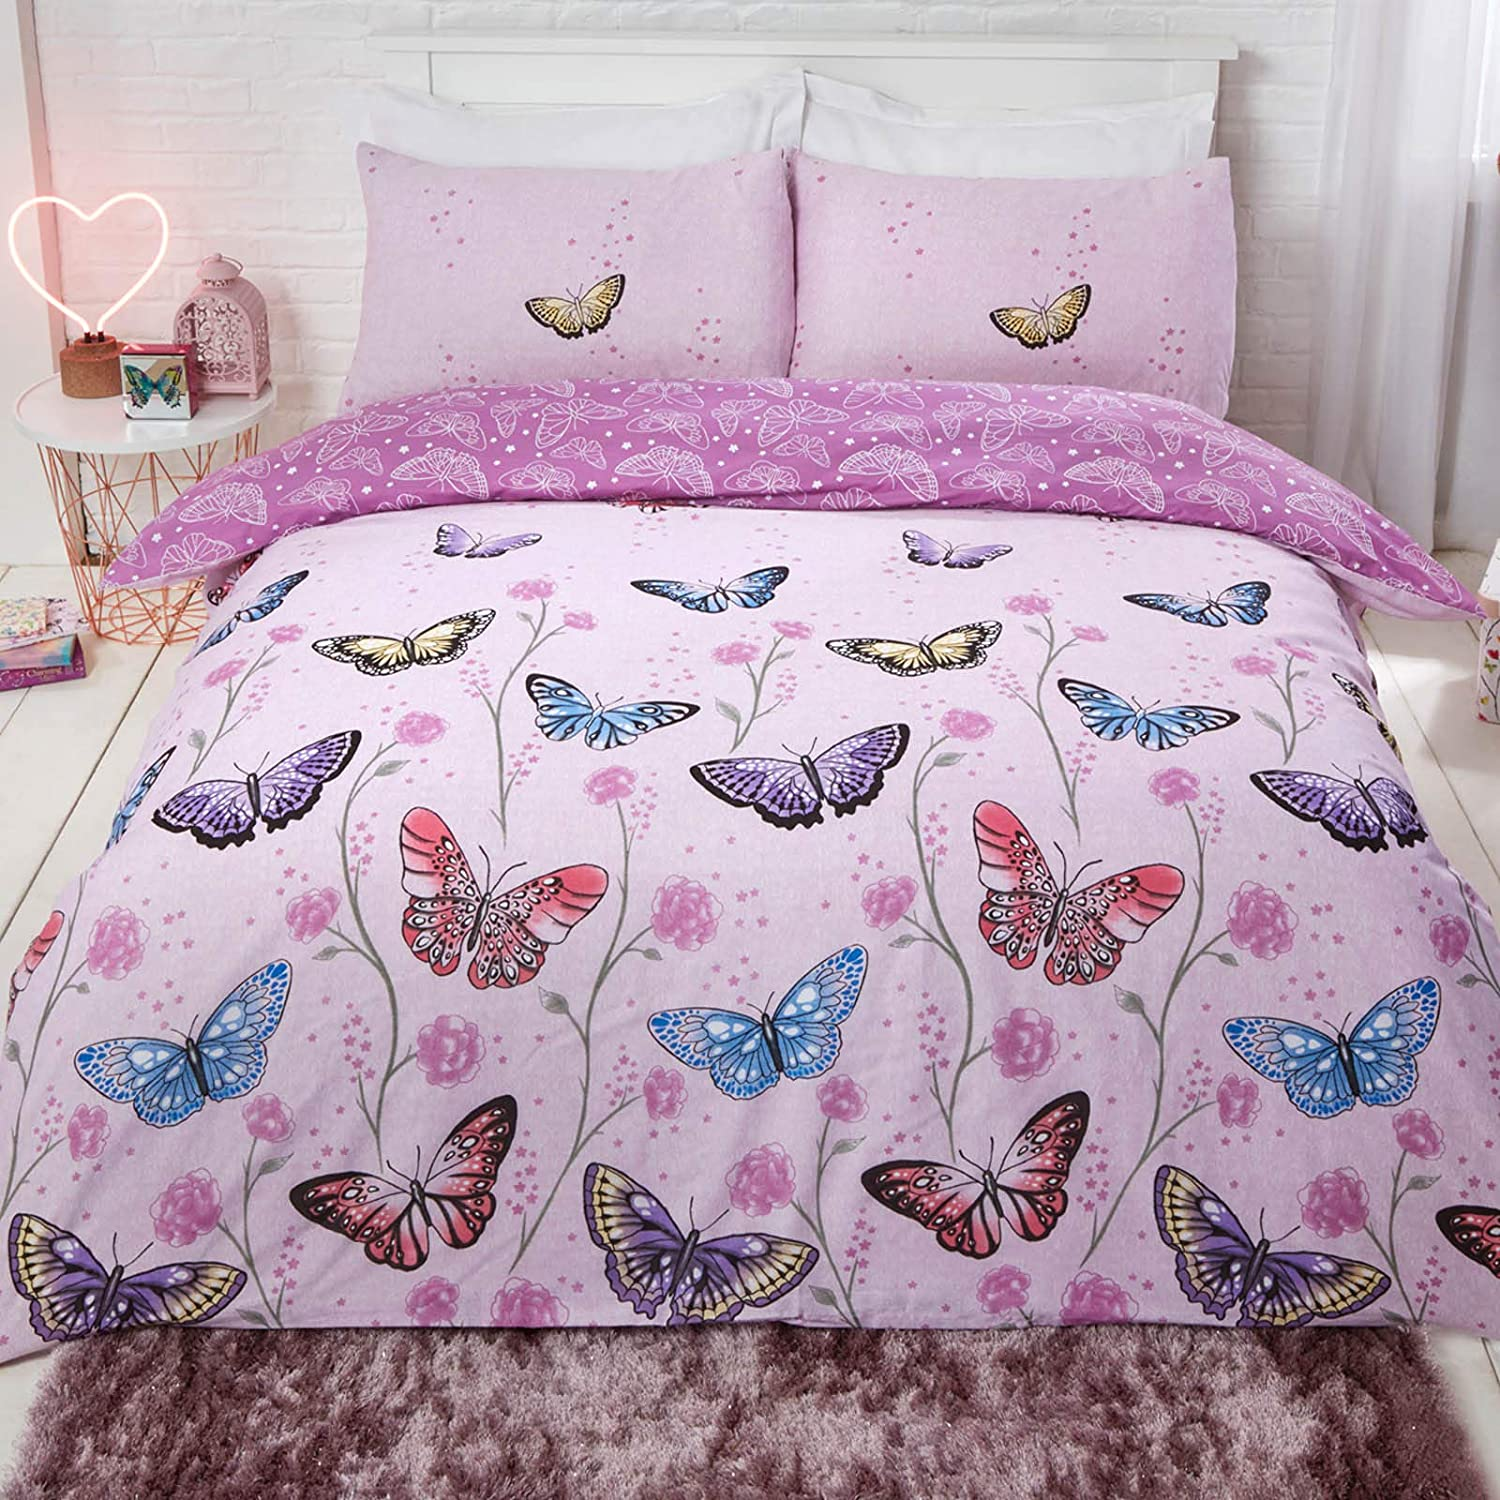 Butterfly Modern Quilt Duvet Cover /& Pillowcase Bedding Bed Sets Pink Or Purple